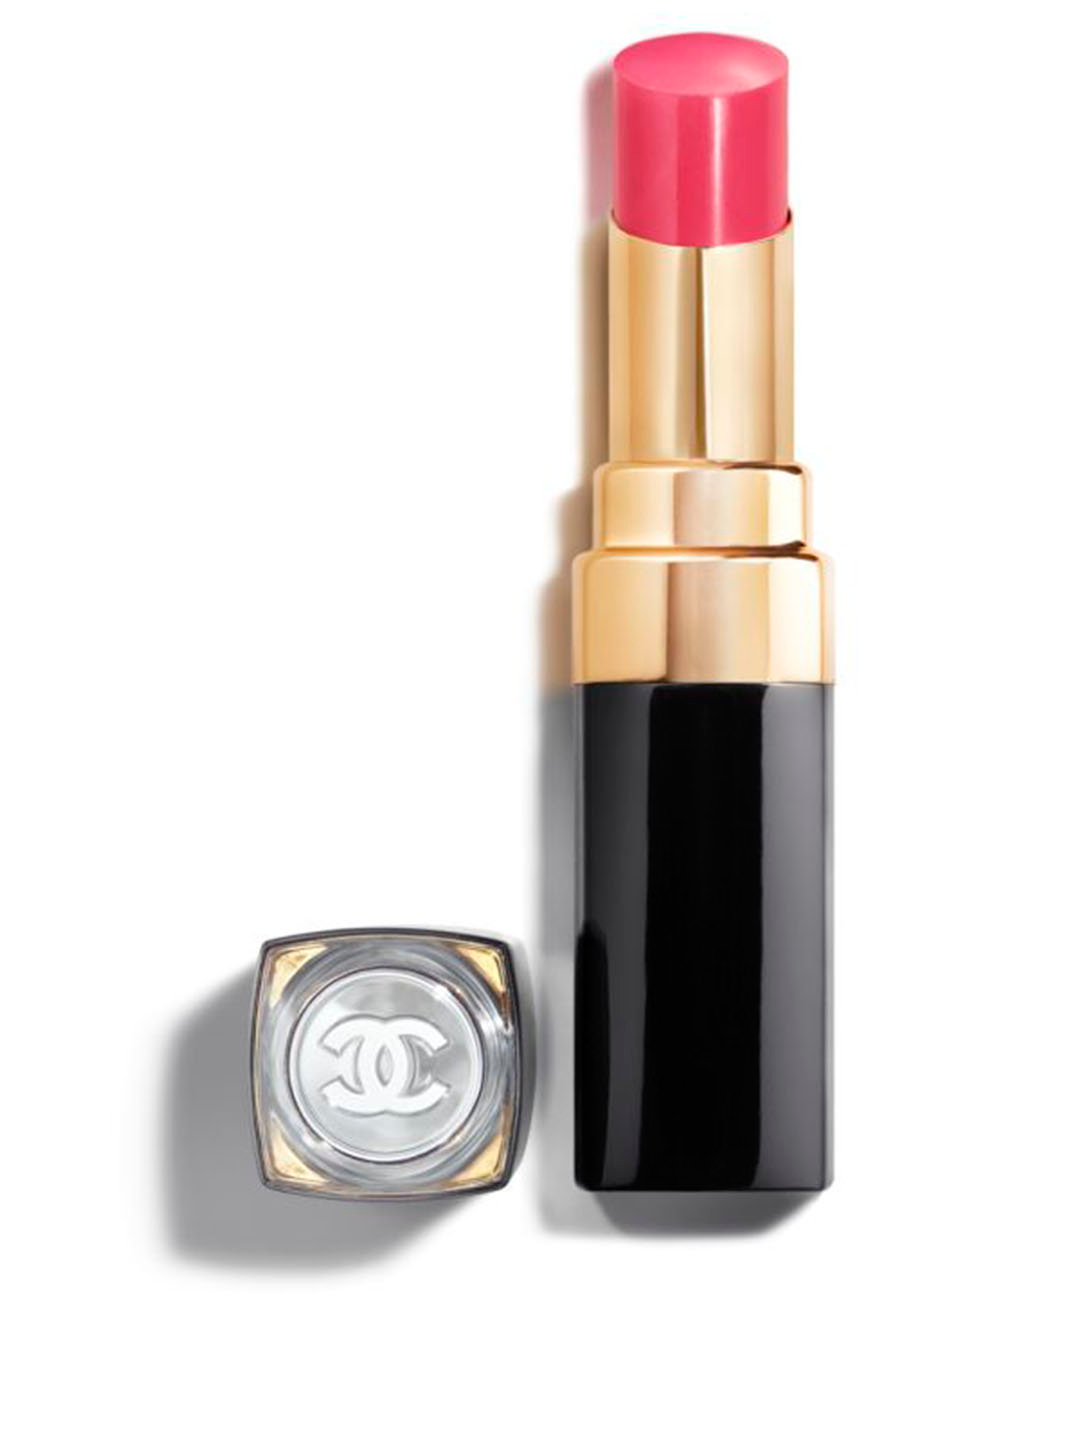 CHANEL La Couleur, La Brillance, L'Intensité En Un Éclair CHANEL Rose